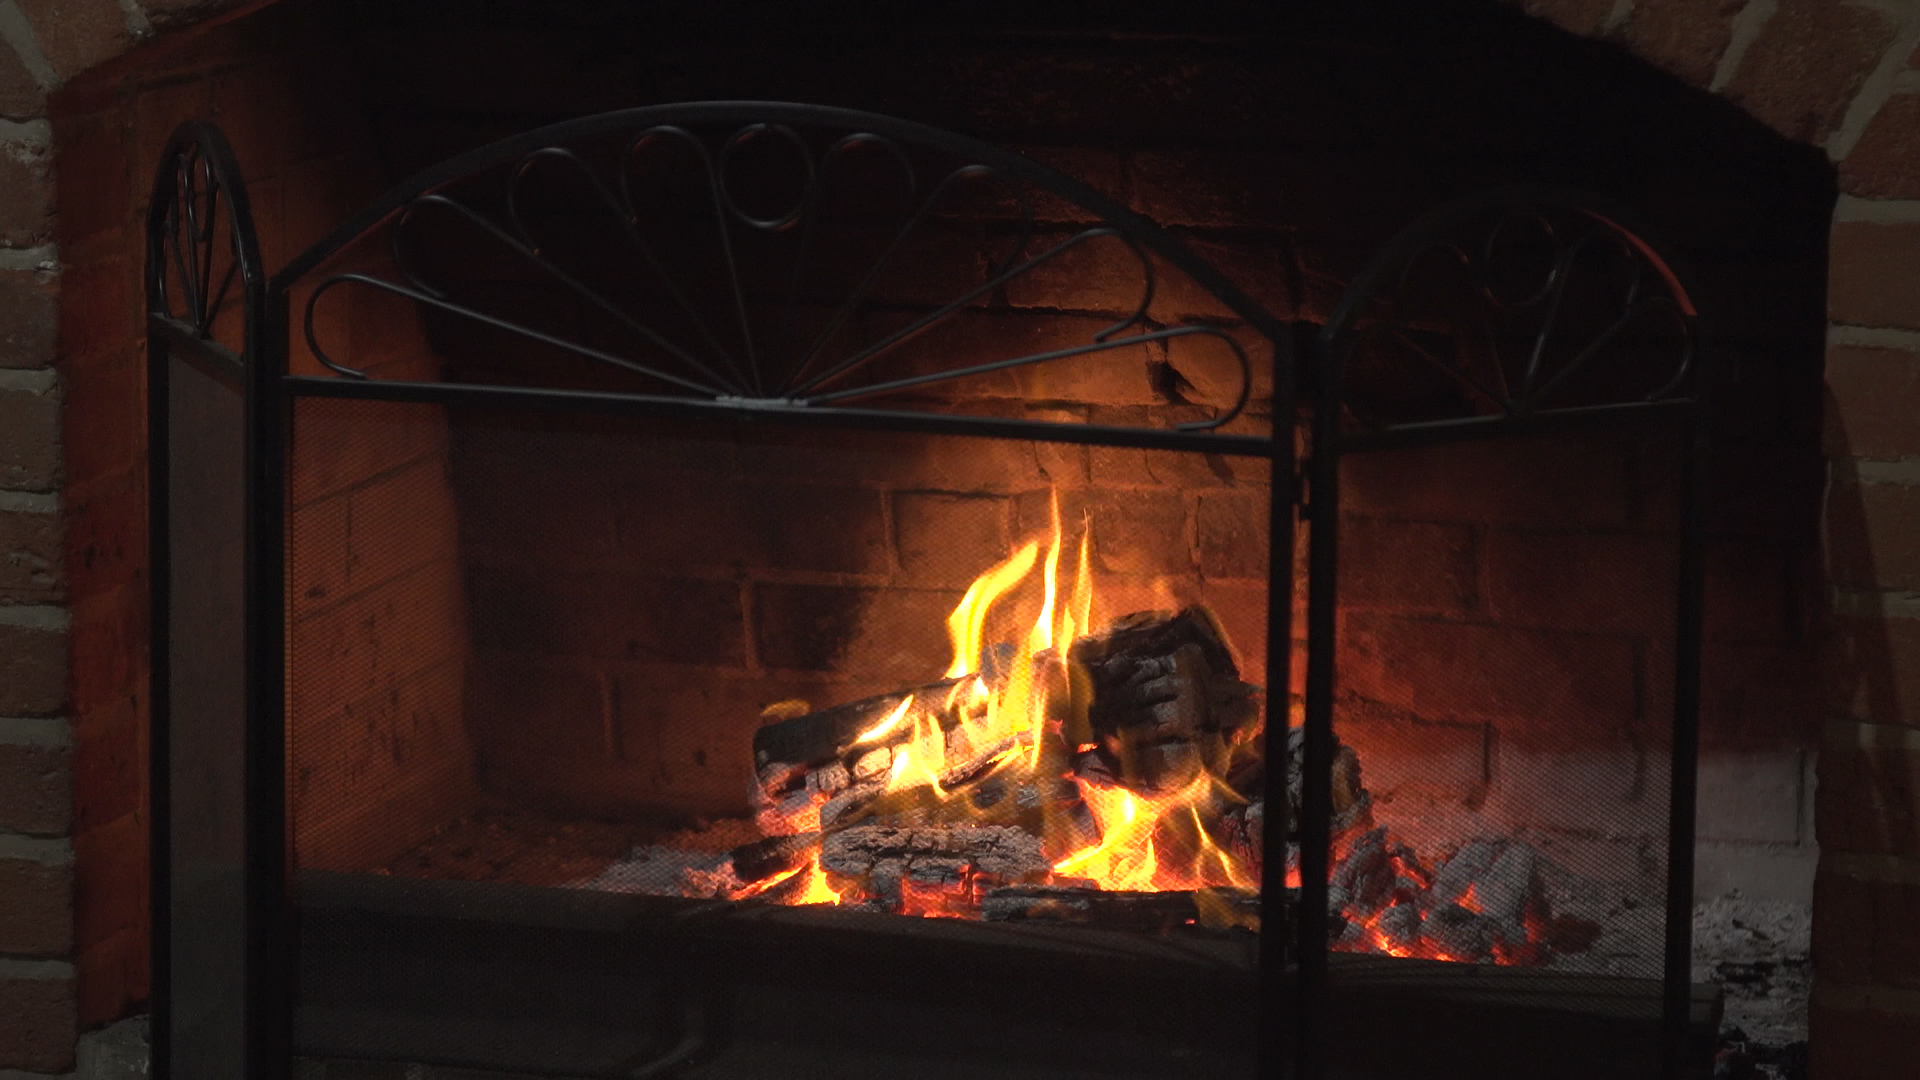 Warm slow motion fireplace buring during winter